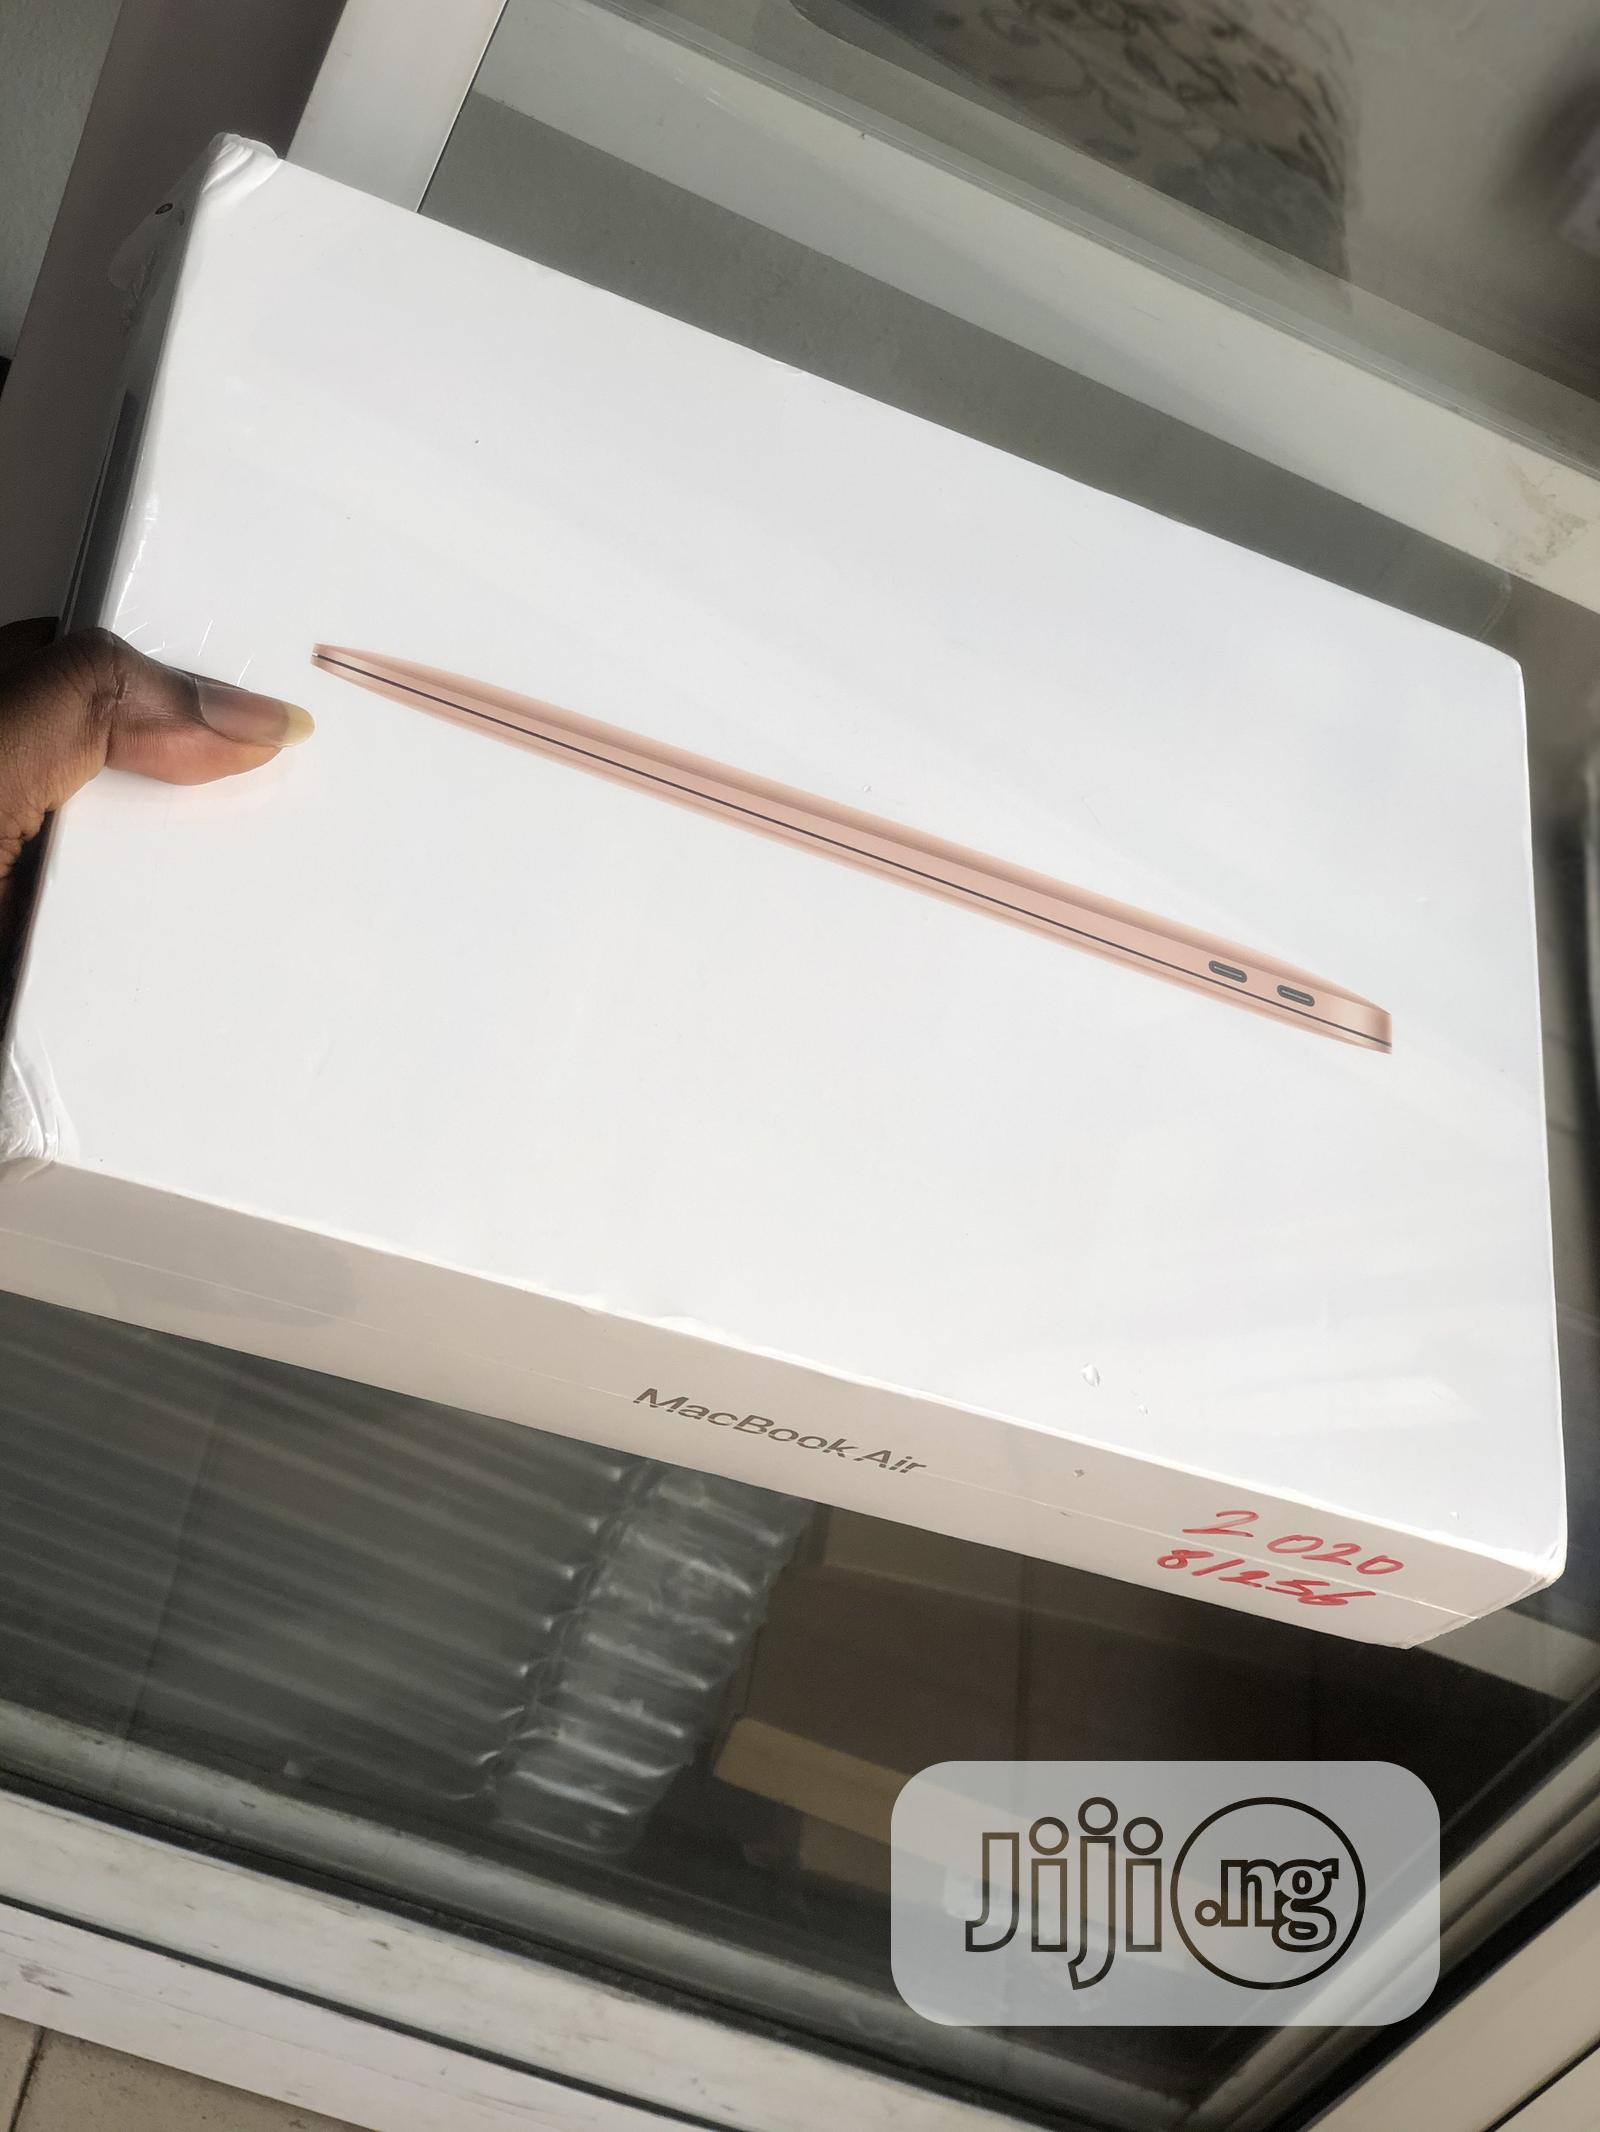 New Laptop Apple MacBook Air 8GB Intel Core i3 SSD 256GB | Laptops & Computers for sale in Ikeja, Lagos State, Nigeria